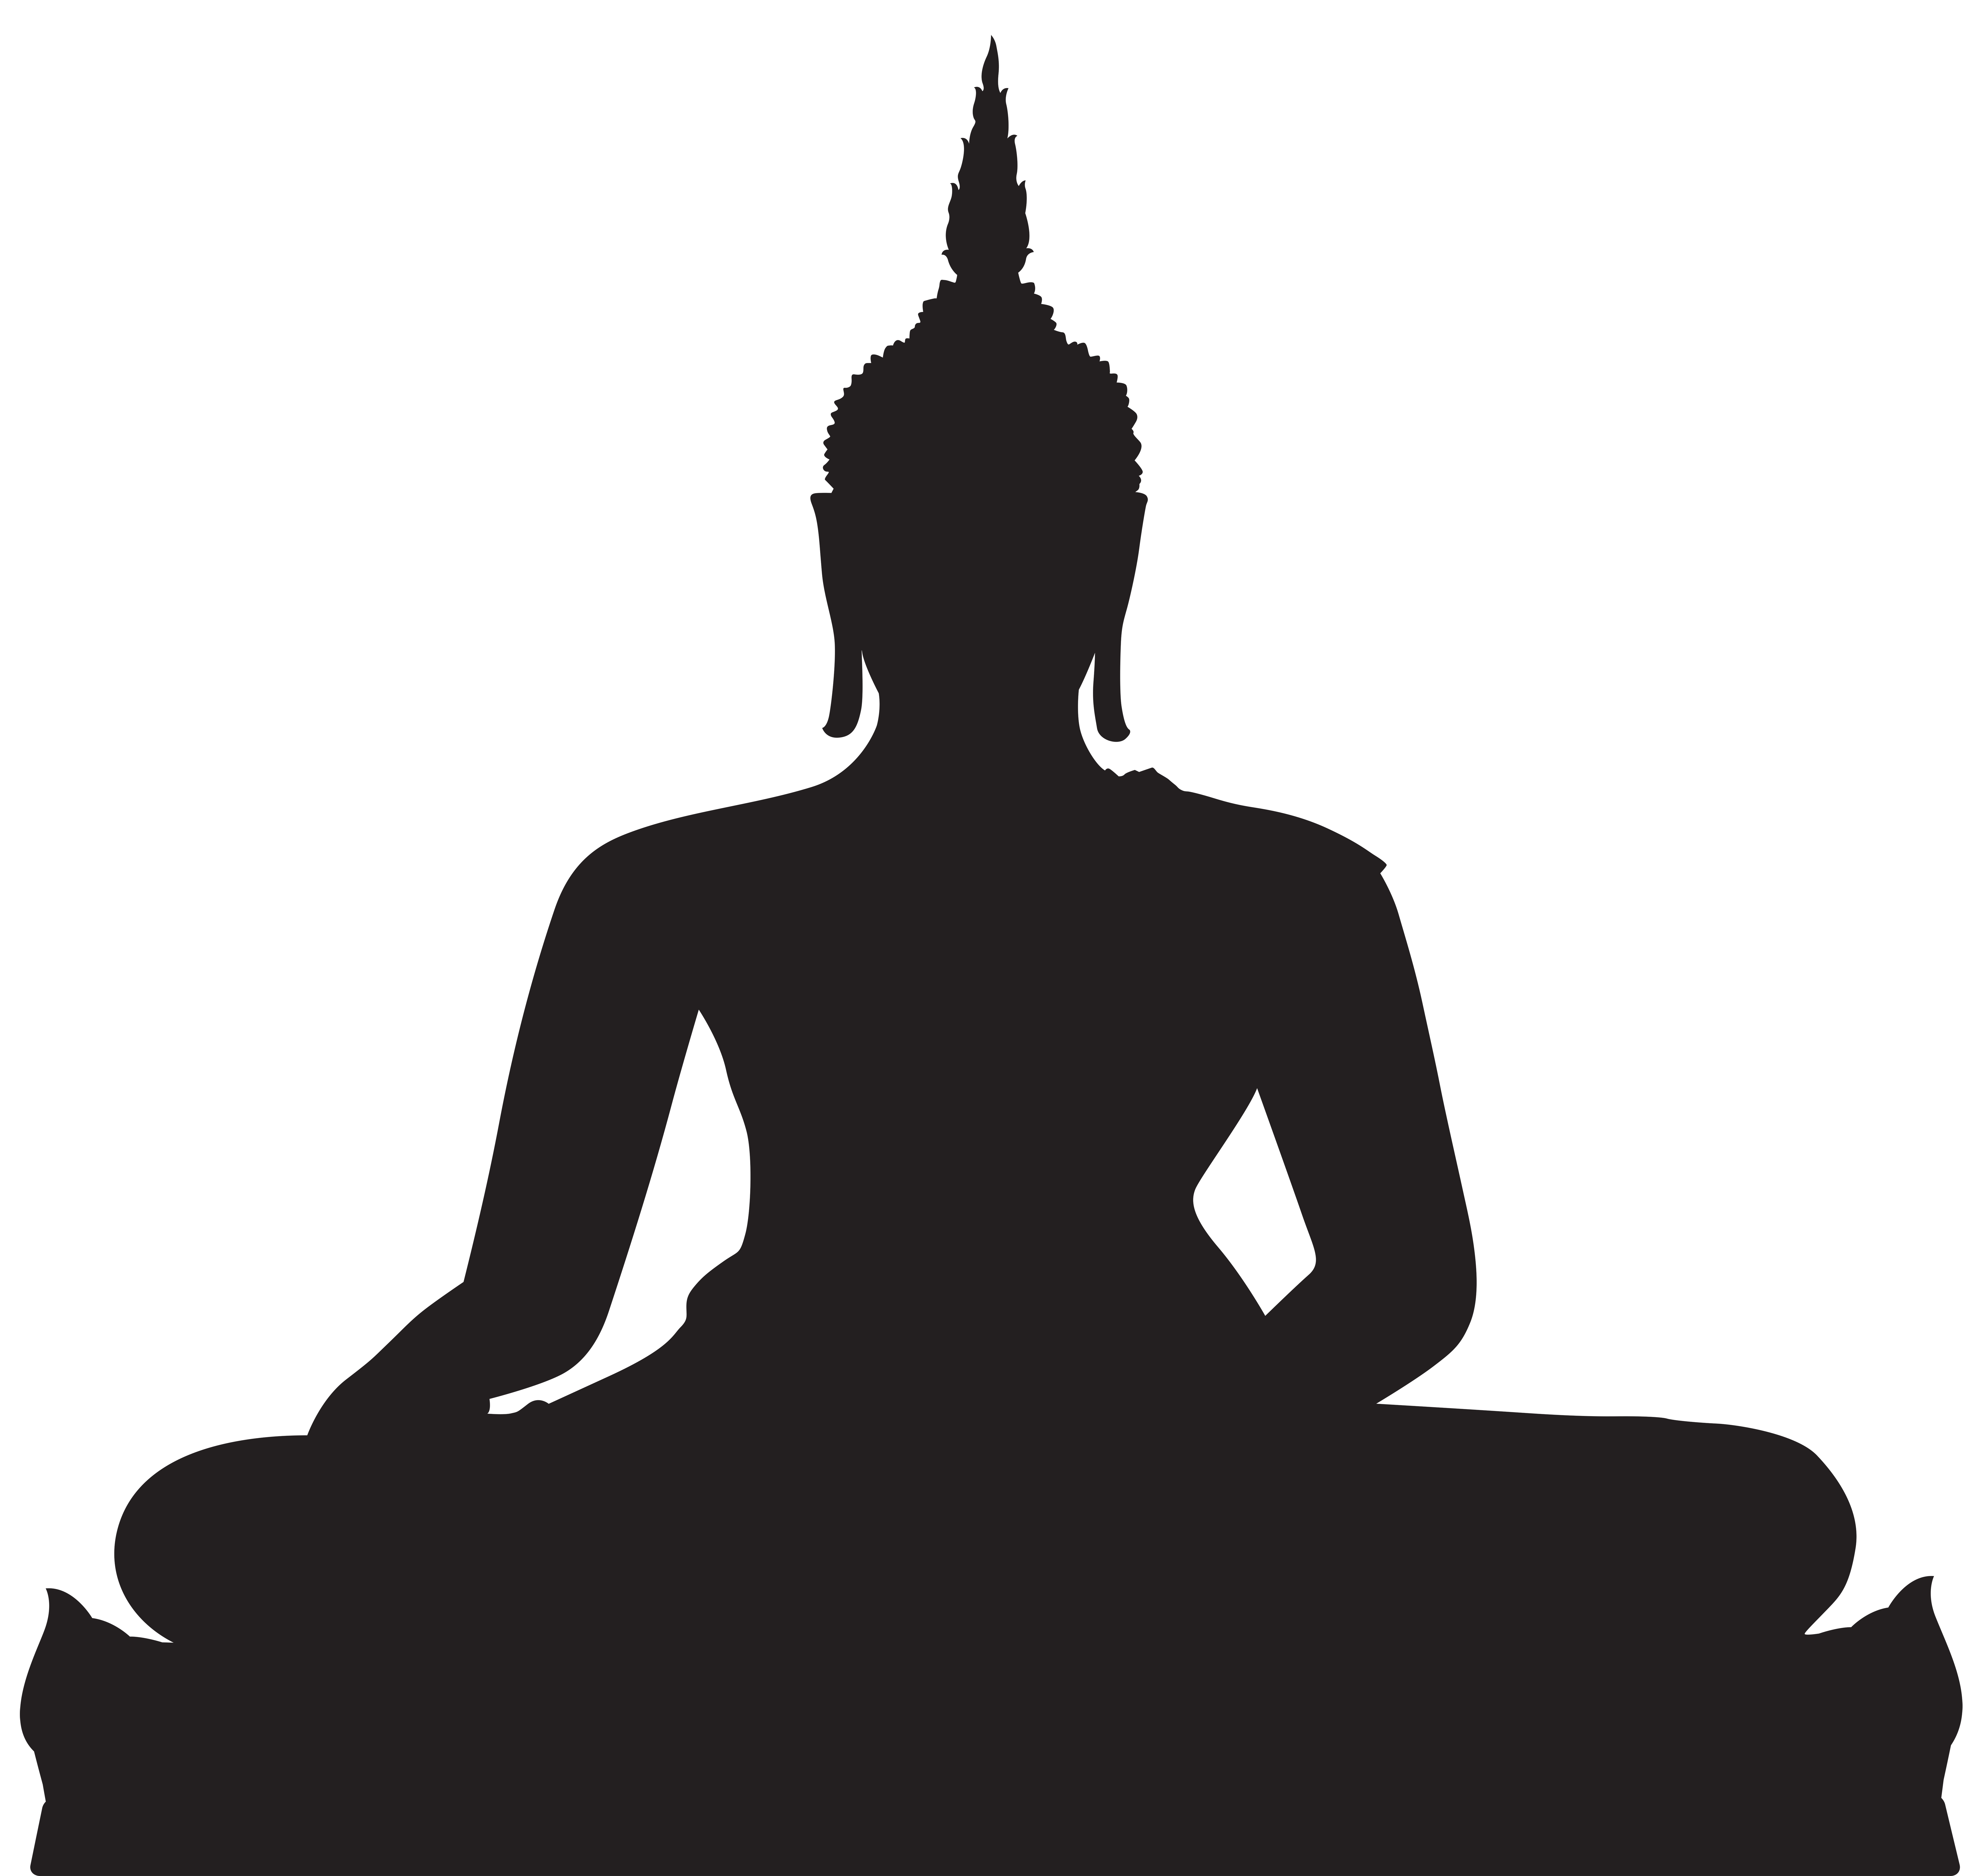 clipart stock Buddha clipart template. Black and white silhouette